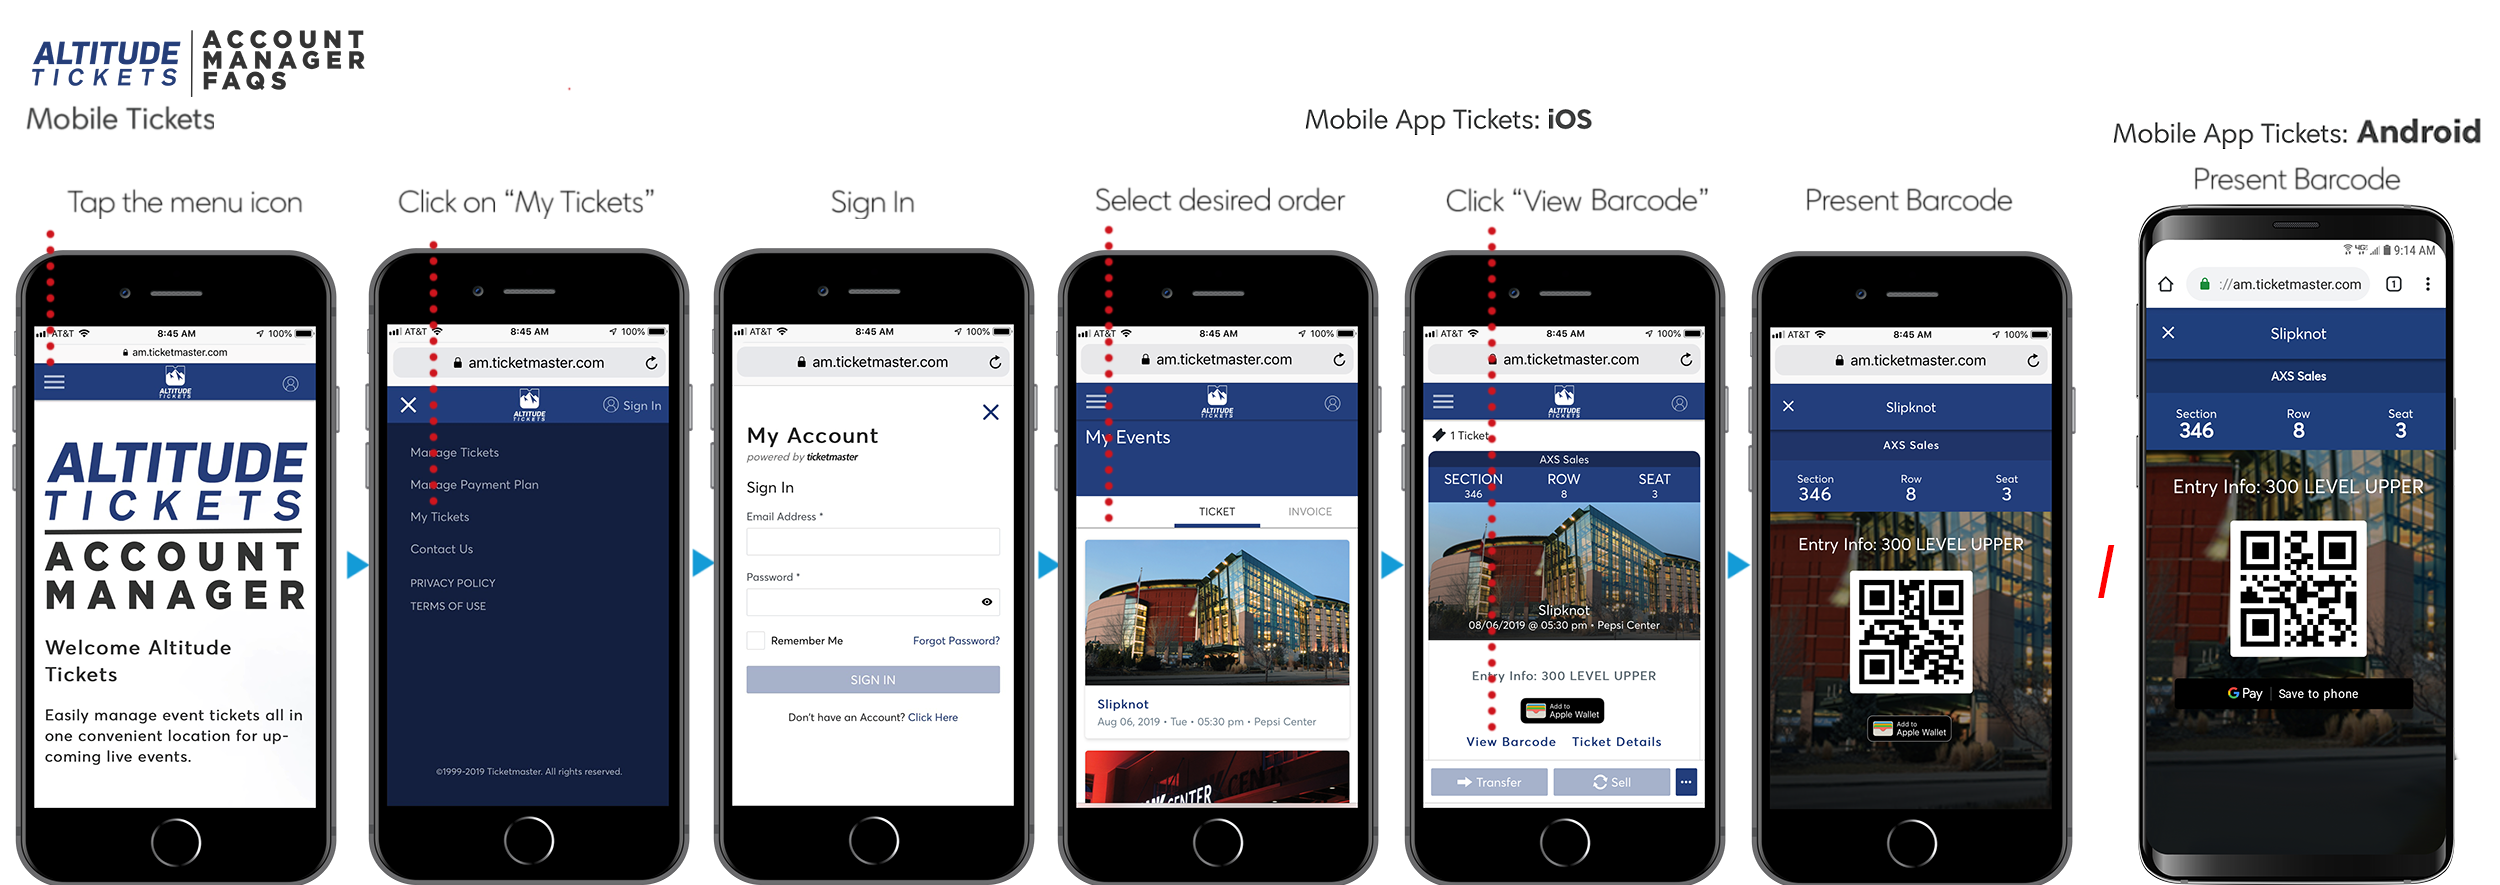 How to use Mobile Tickets – Altitude Tickets Self Help